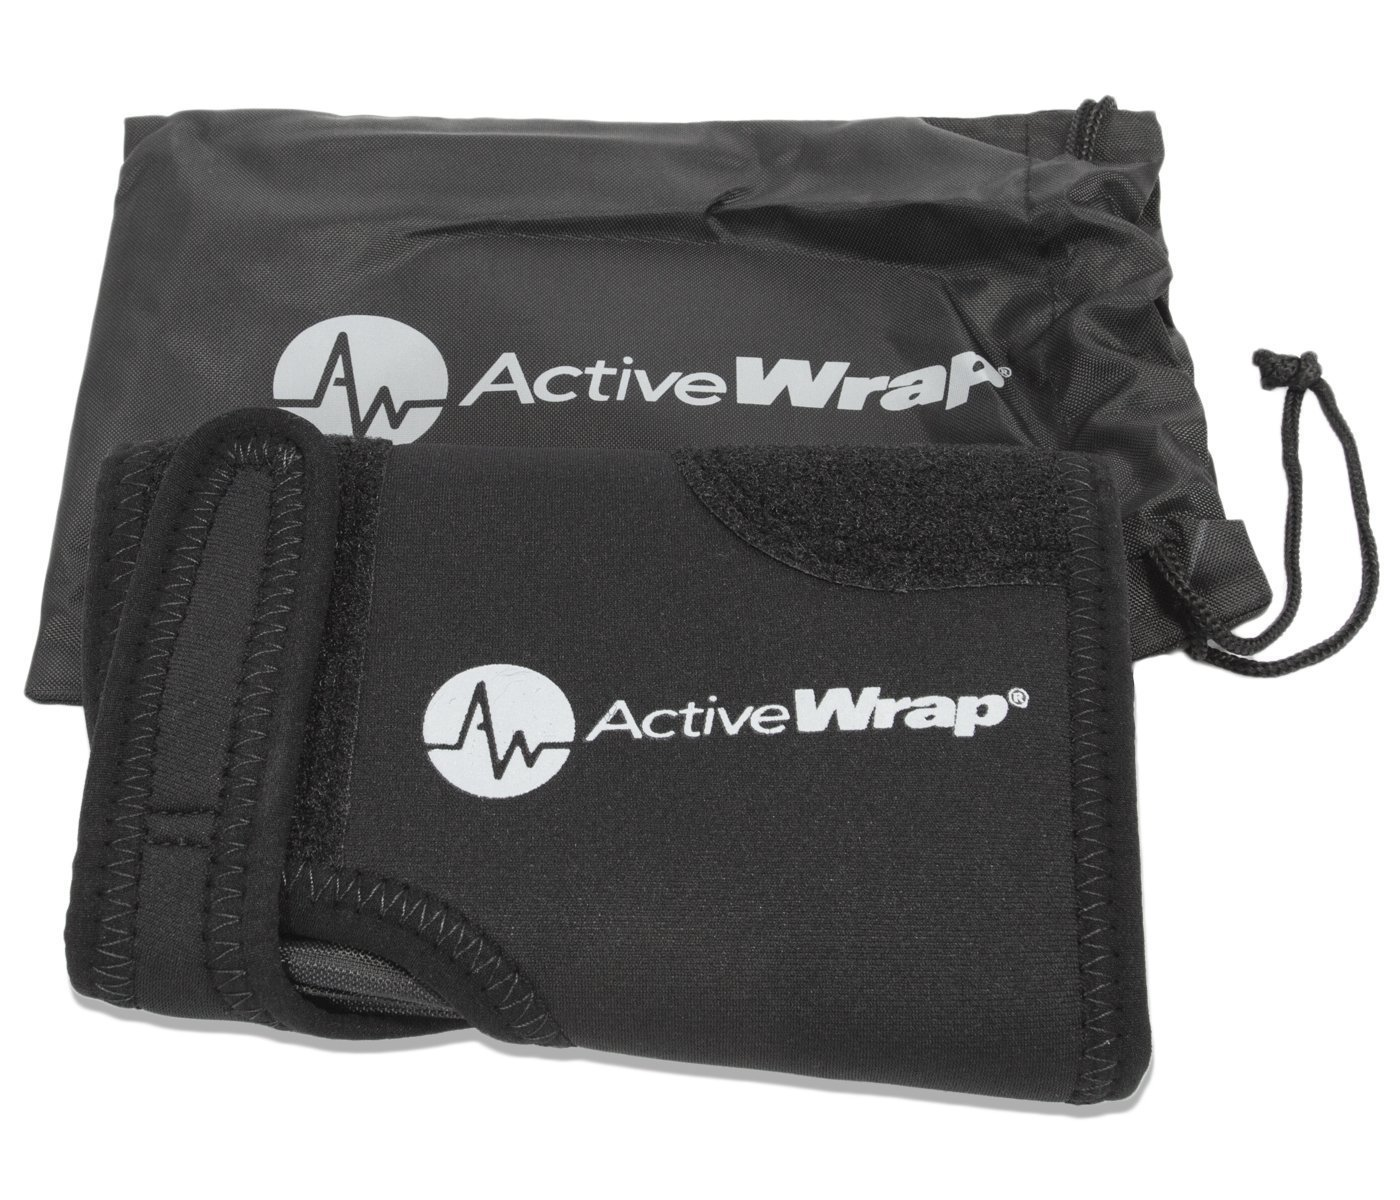 AW ACTIVEWRAP Hand and Wrist Ice/Heat Wrap - Perfect for Sprained Wrist, Arthritis Treatment for Hands, and Wrist Pain Therapy - Hot/Cold Gel Packs Included